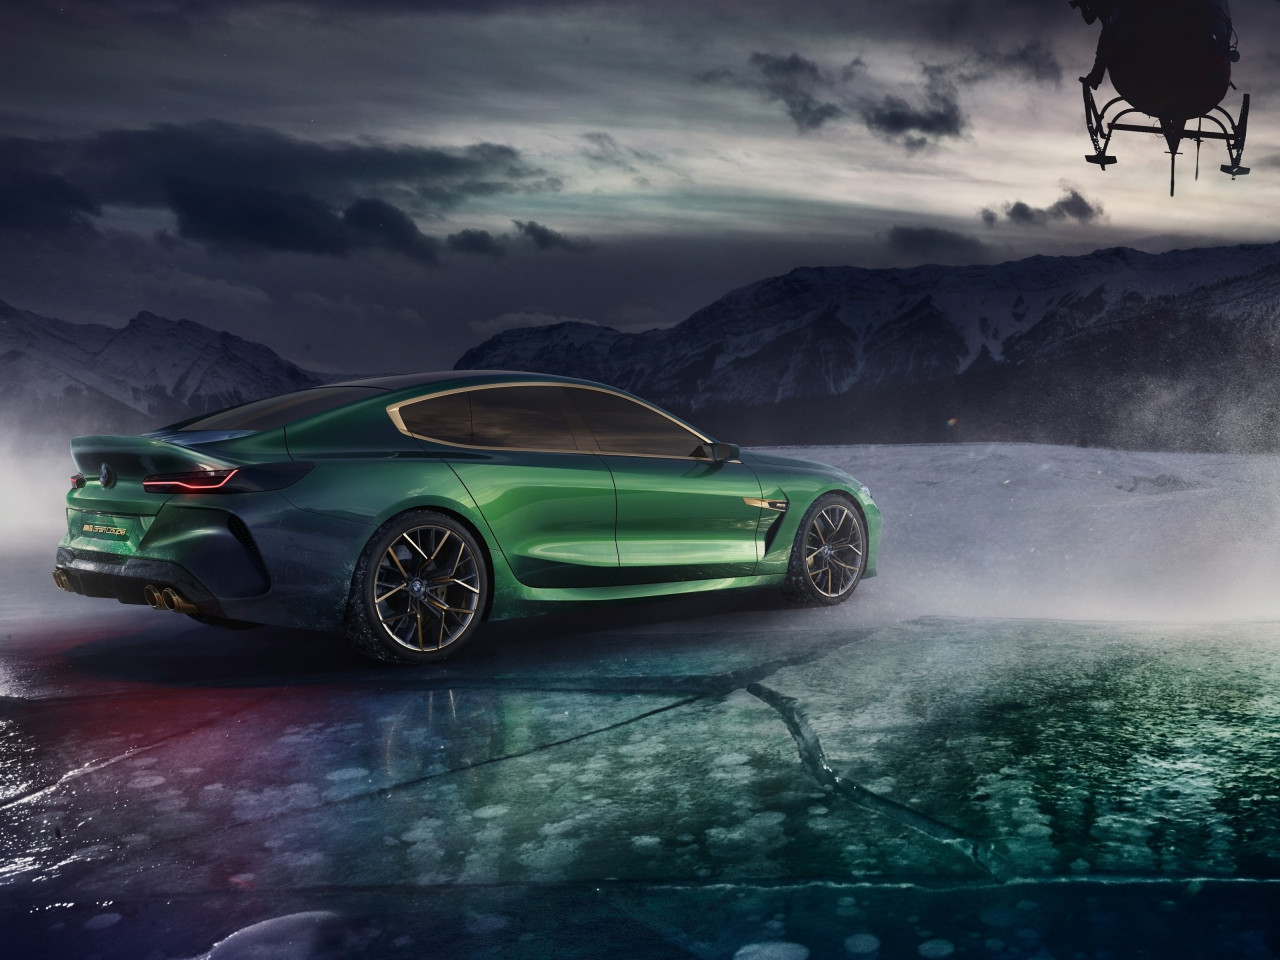 BMW Concept M8 Gran Coupe 2018 rear side | 1280x960 wallpaper